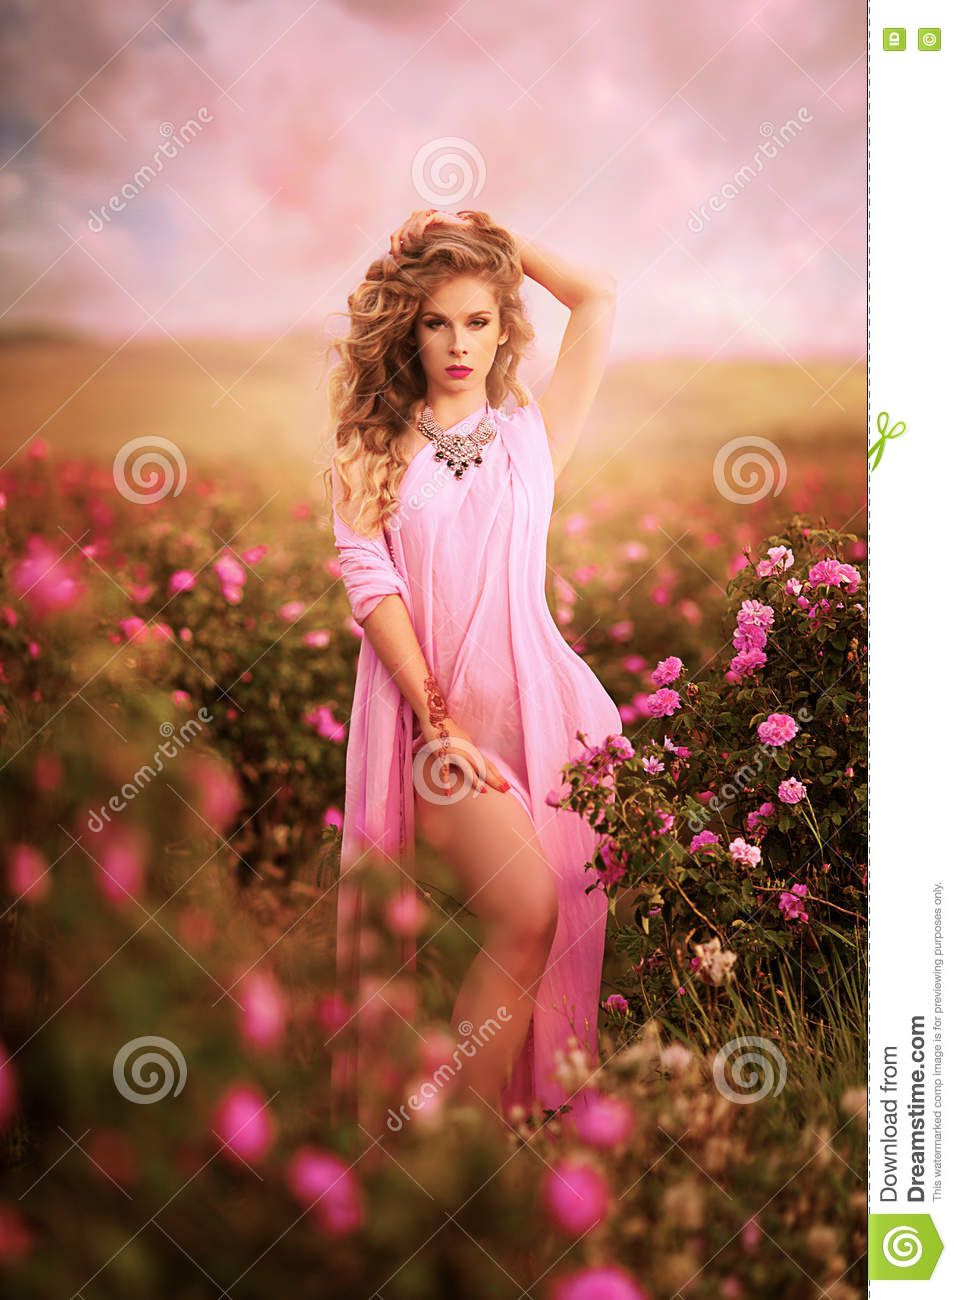 Beautiful girl in a pink dress standing in the garden roses